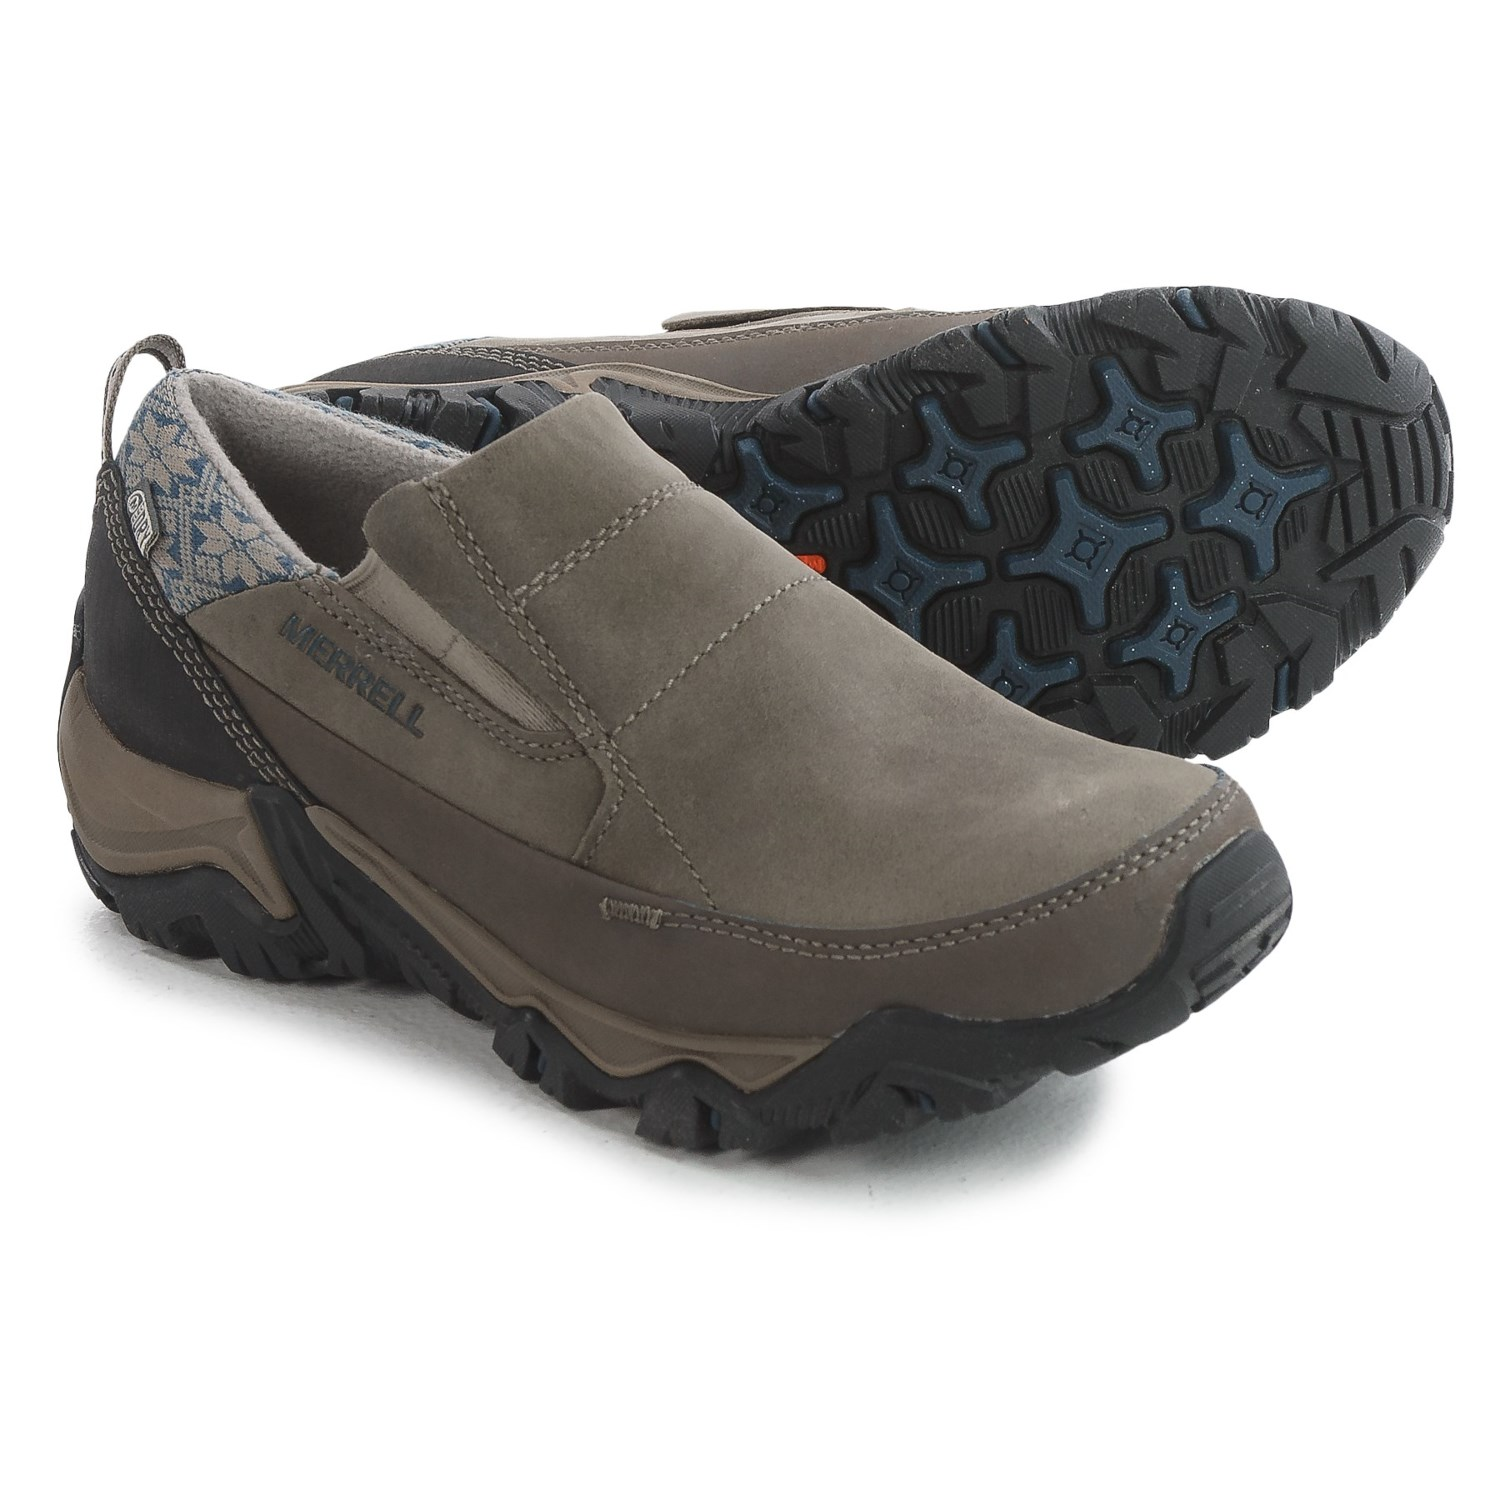 Sale Hiking Boots, Trail Running Shoes and More. Saving money is a common desire when it comes to shopping, but you don't want to compromise quality just to save a few dollars.